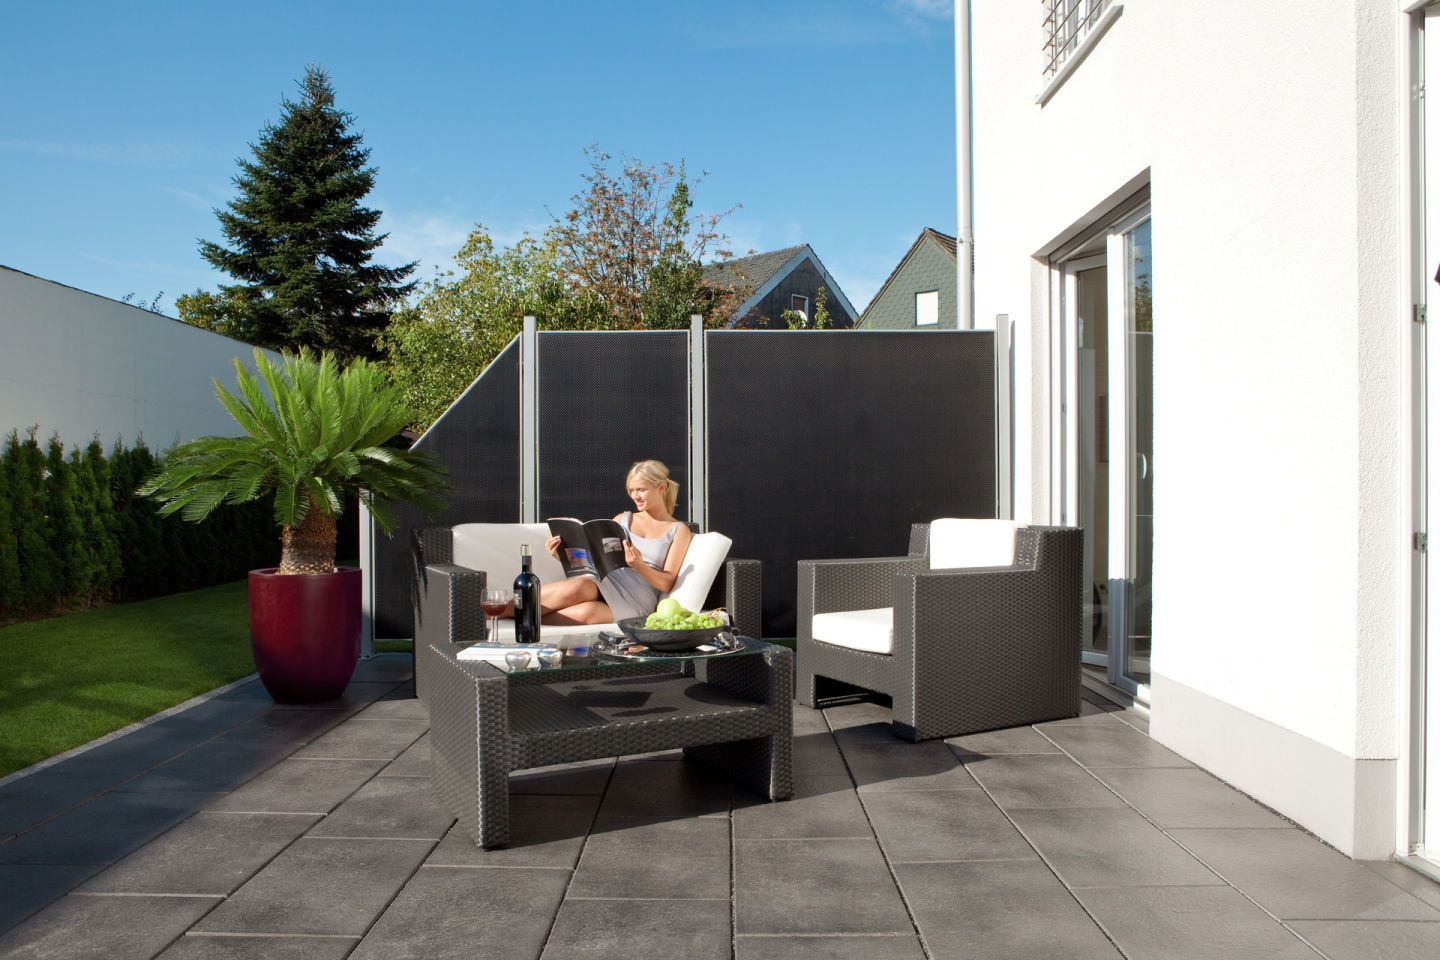 gartengestaltung sichtschutz f r die terrasse. Black Bedroom Furniture Sets. Home Design Ideas